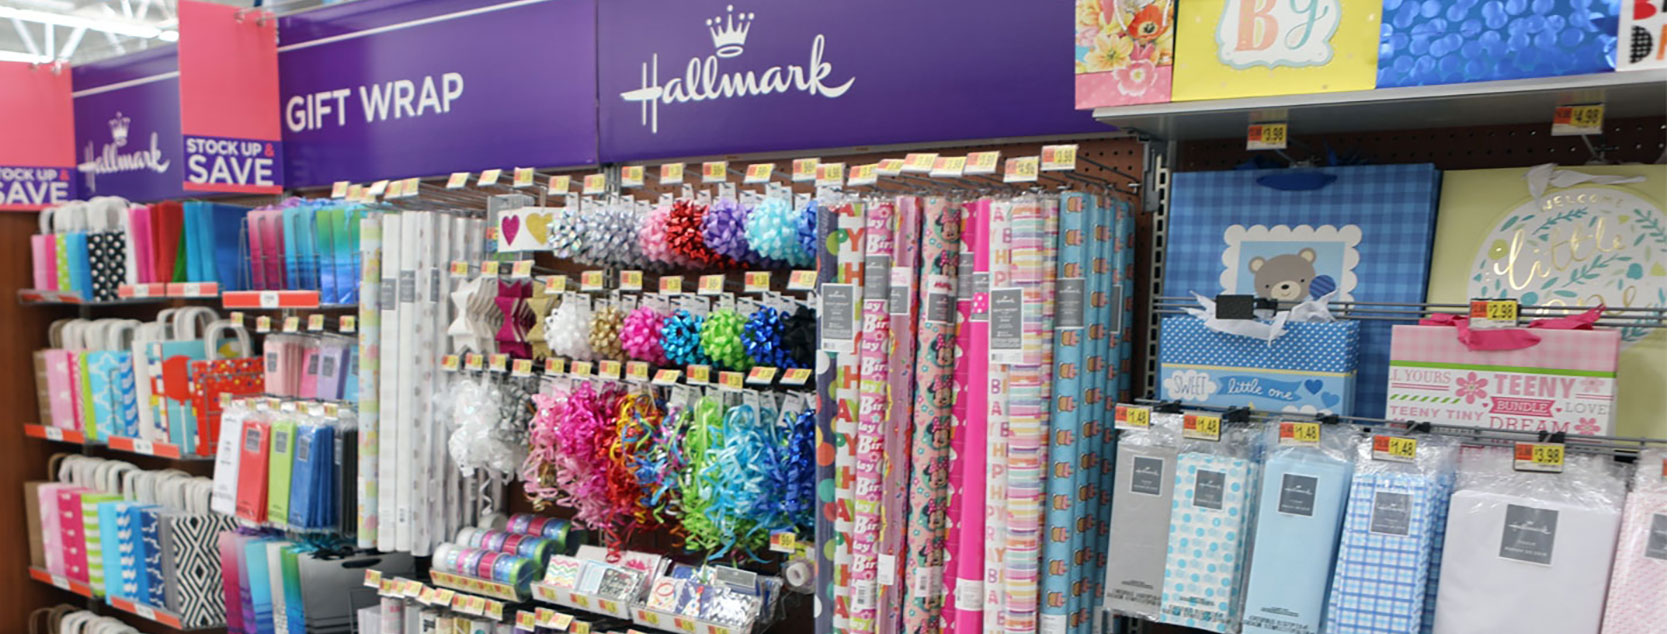 Merchandiser Department - Hallmark